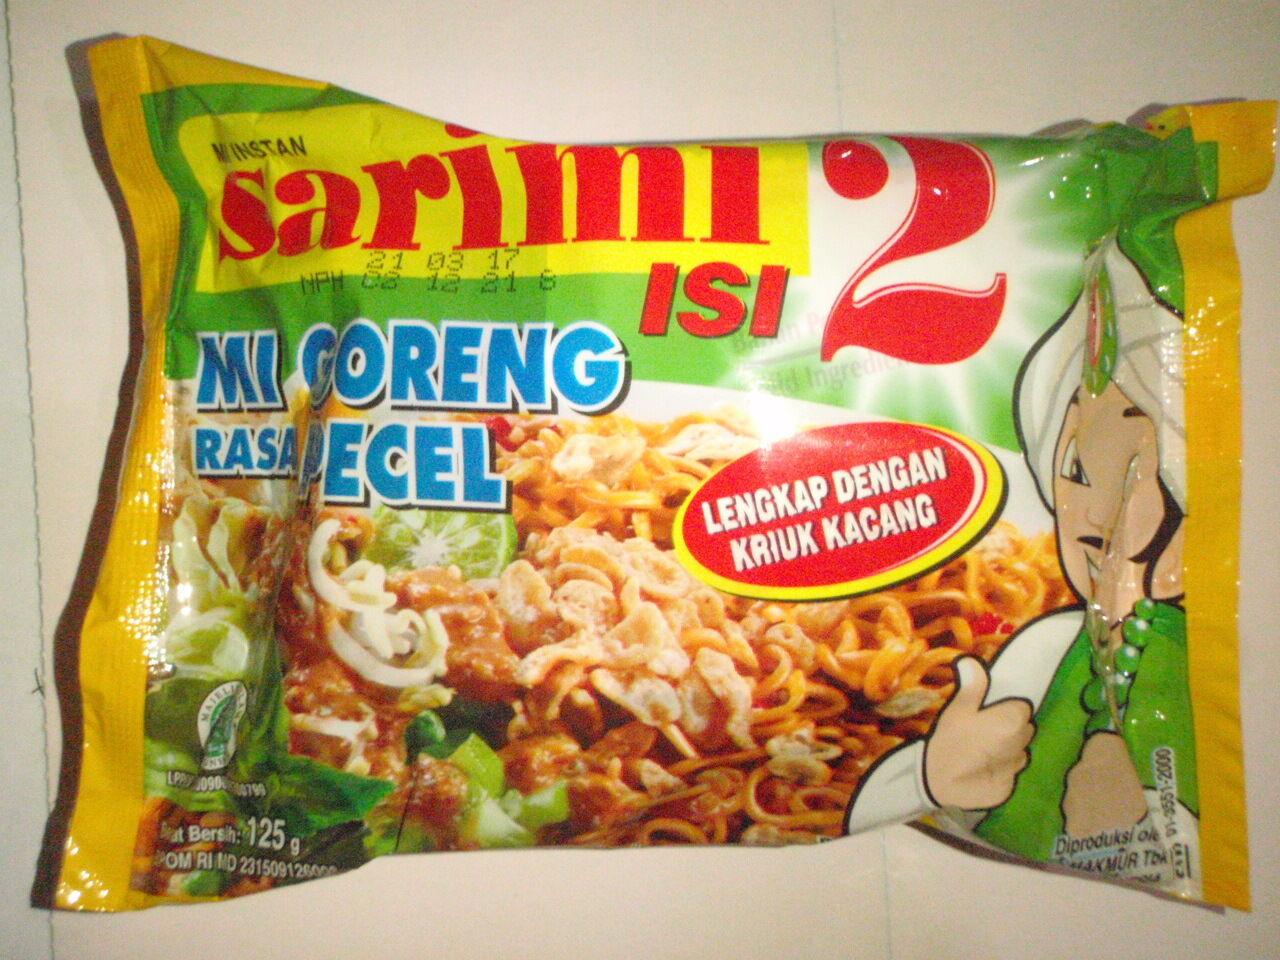 6 Pcs Sarimi Noodle Mi Goreng Rasa Pecel Jumbo Size Free Airmail Samyang Hot Spicy Chicken Isi 5 1 Of 8only Available